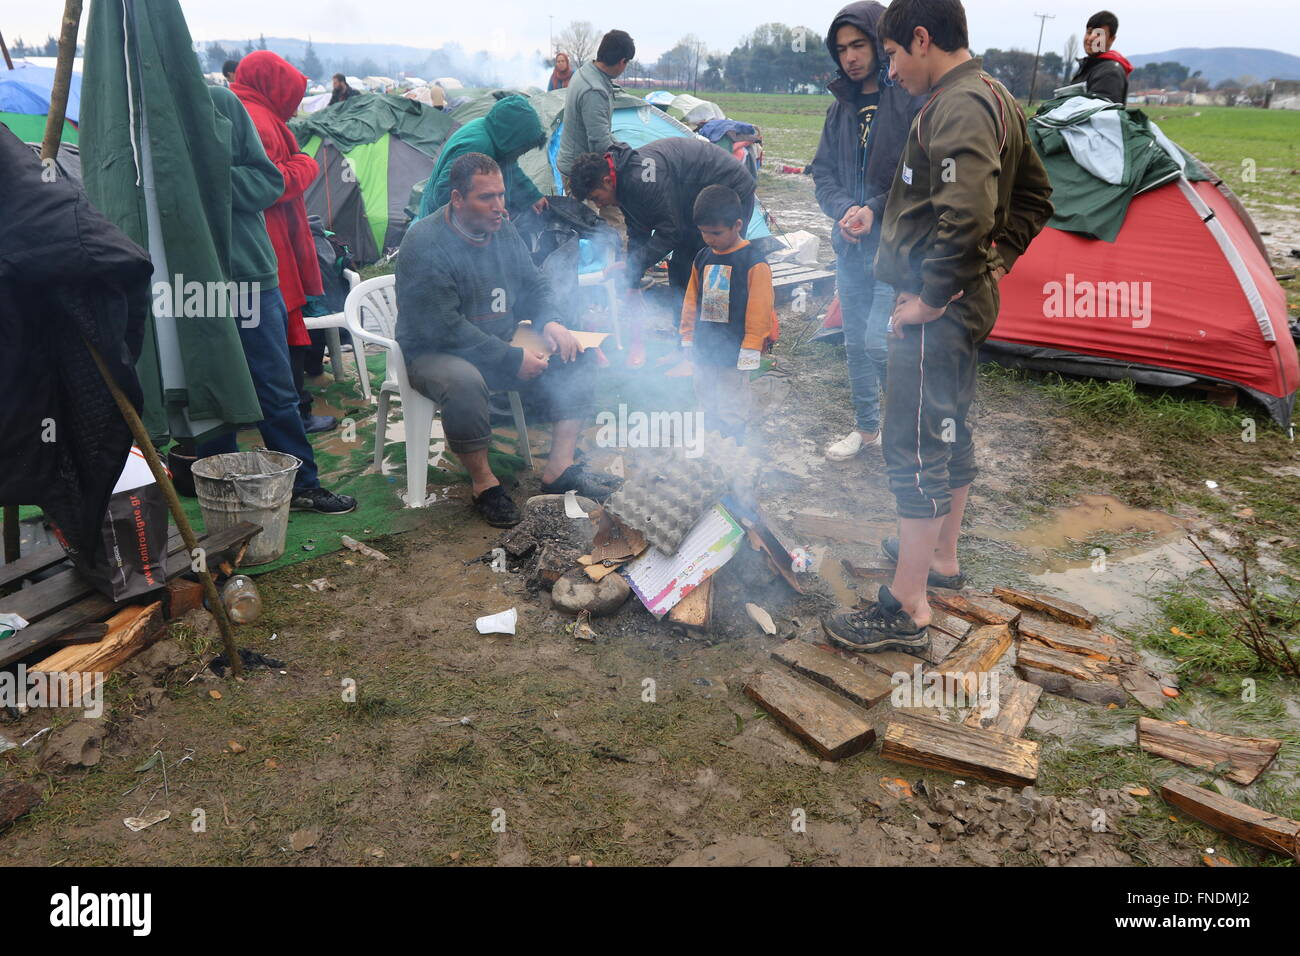 Idomeni, Greece. 14th March 2016. Thousands of refugees are still stranded in the makeshift Idomeni refugee camp - Stock Image